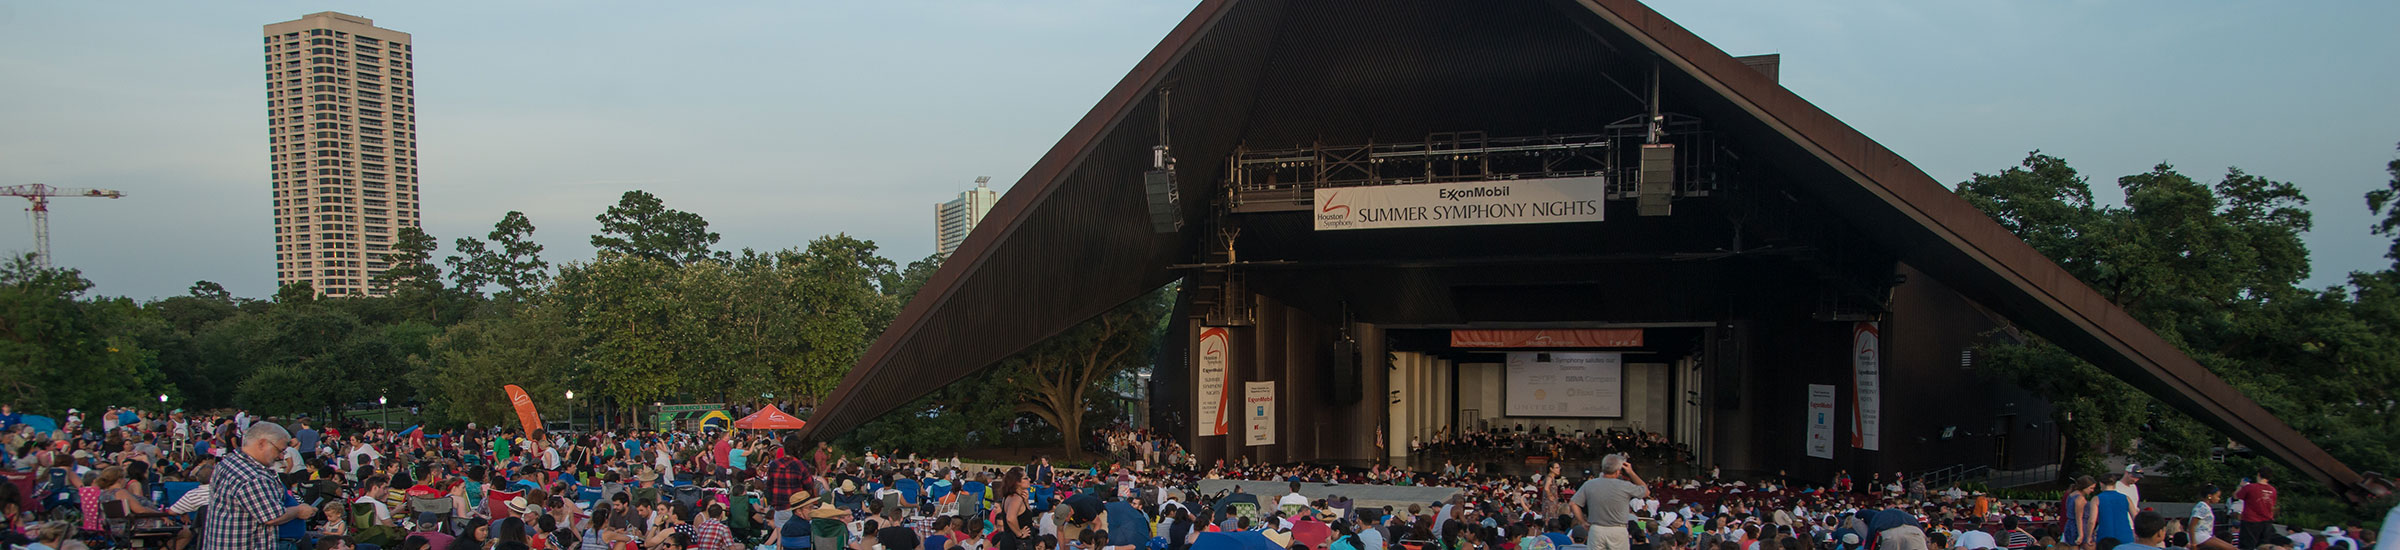 Houston Symphony Miller Outdoor Theatre